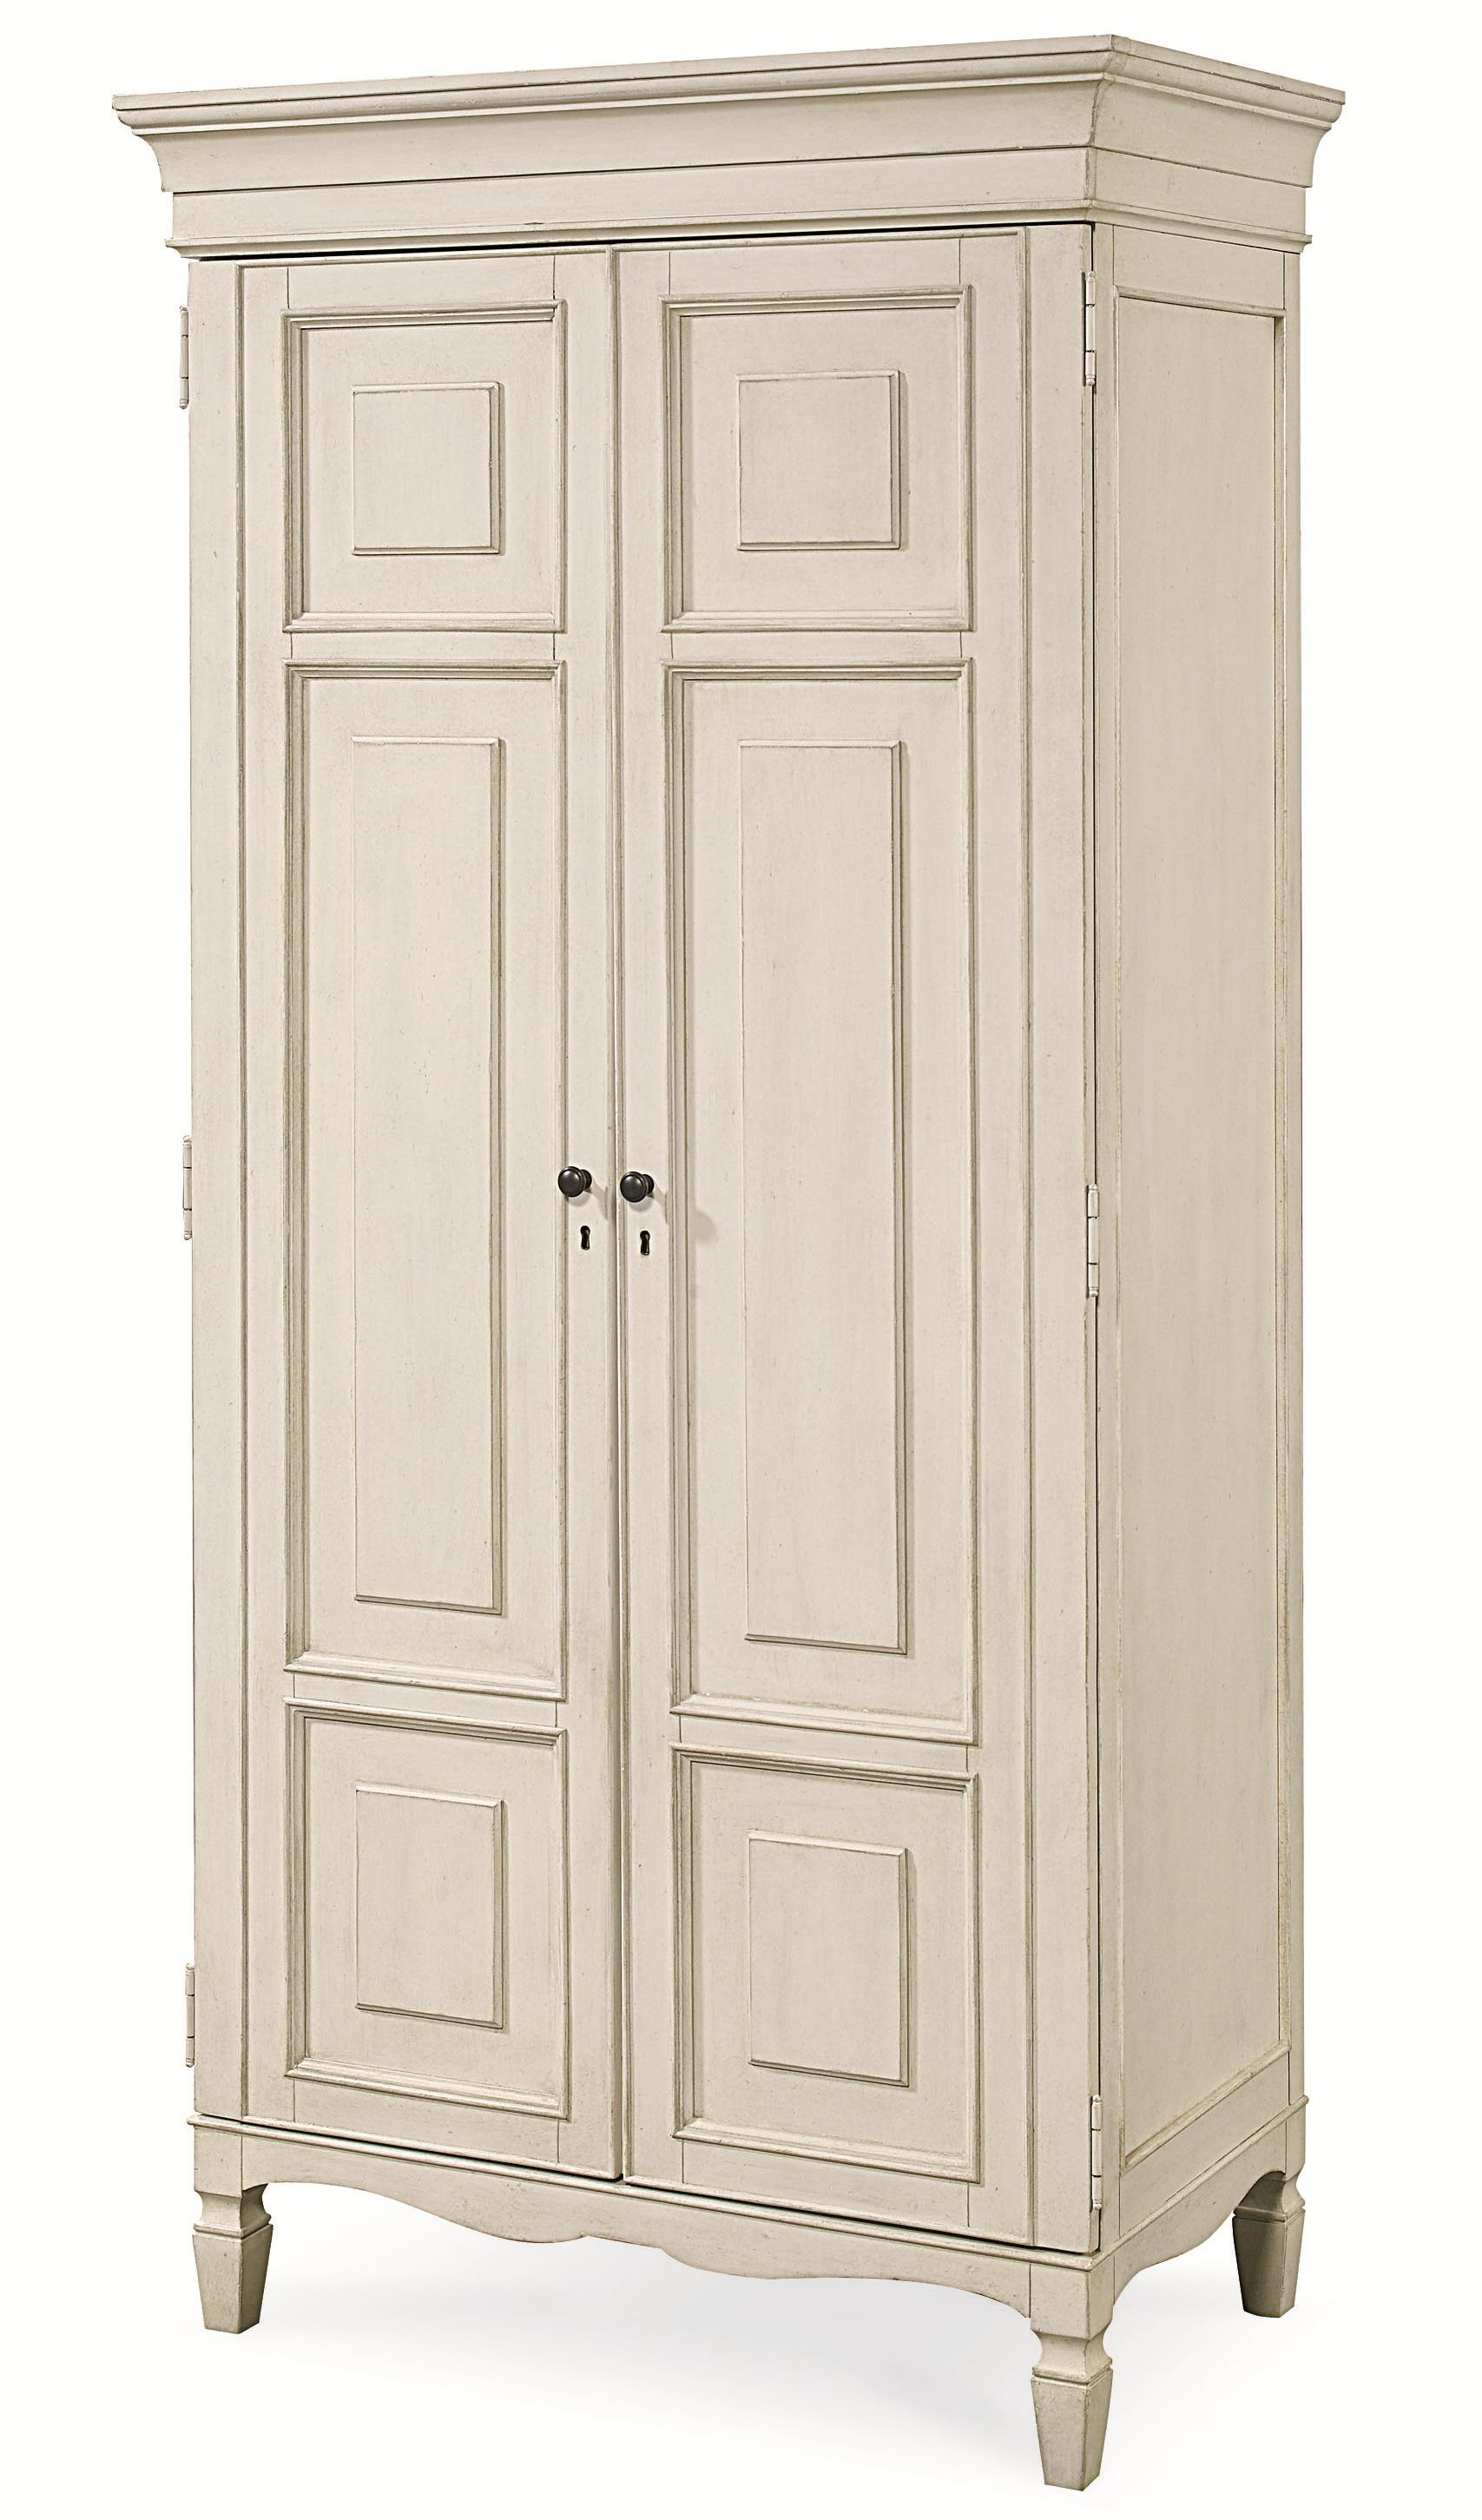 2 Door Tall Cabinet by Universal